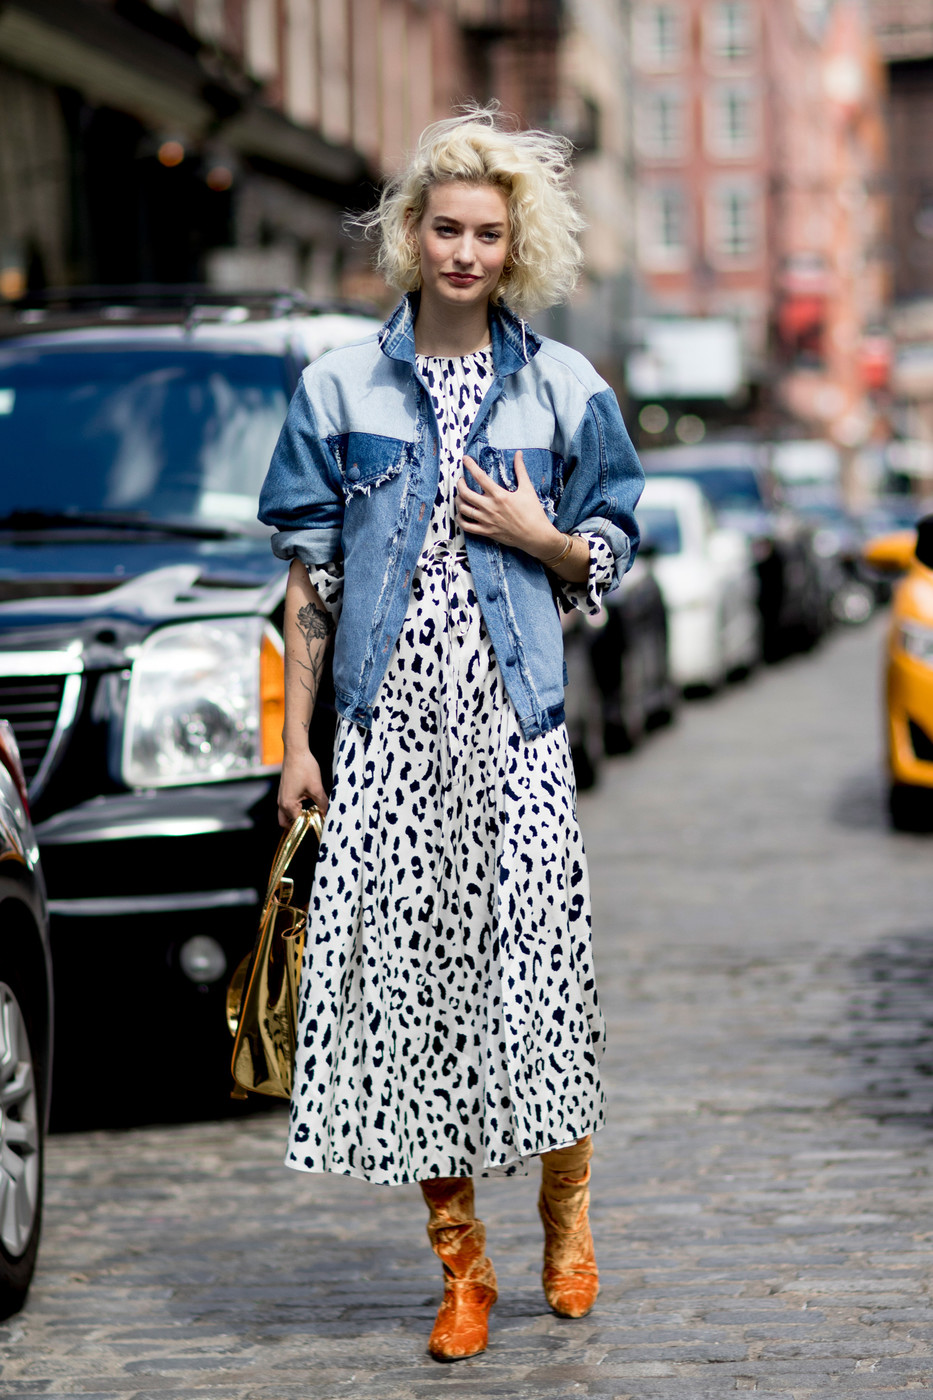 Leopard And Denim 60 Creative Outfit Ideas From New York Fashion Week Livingly